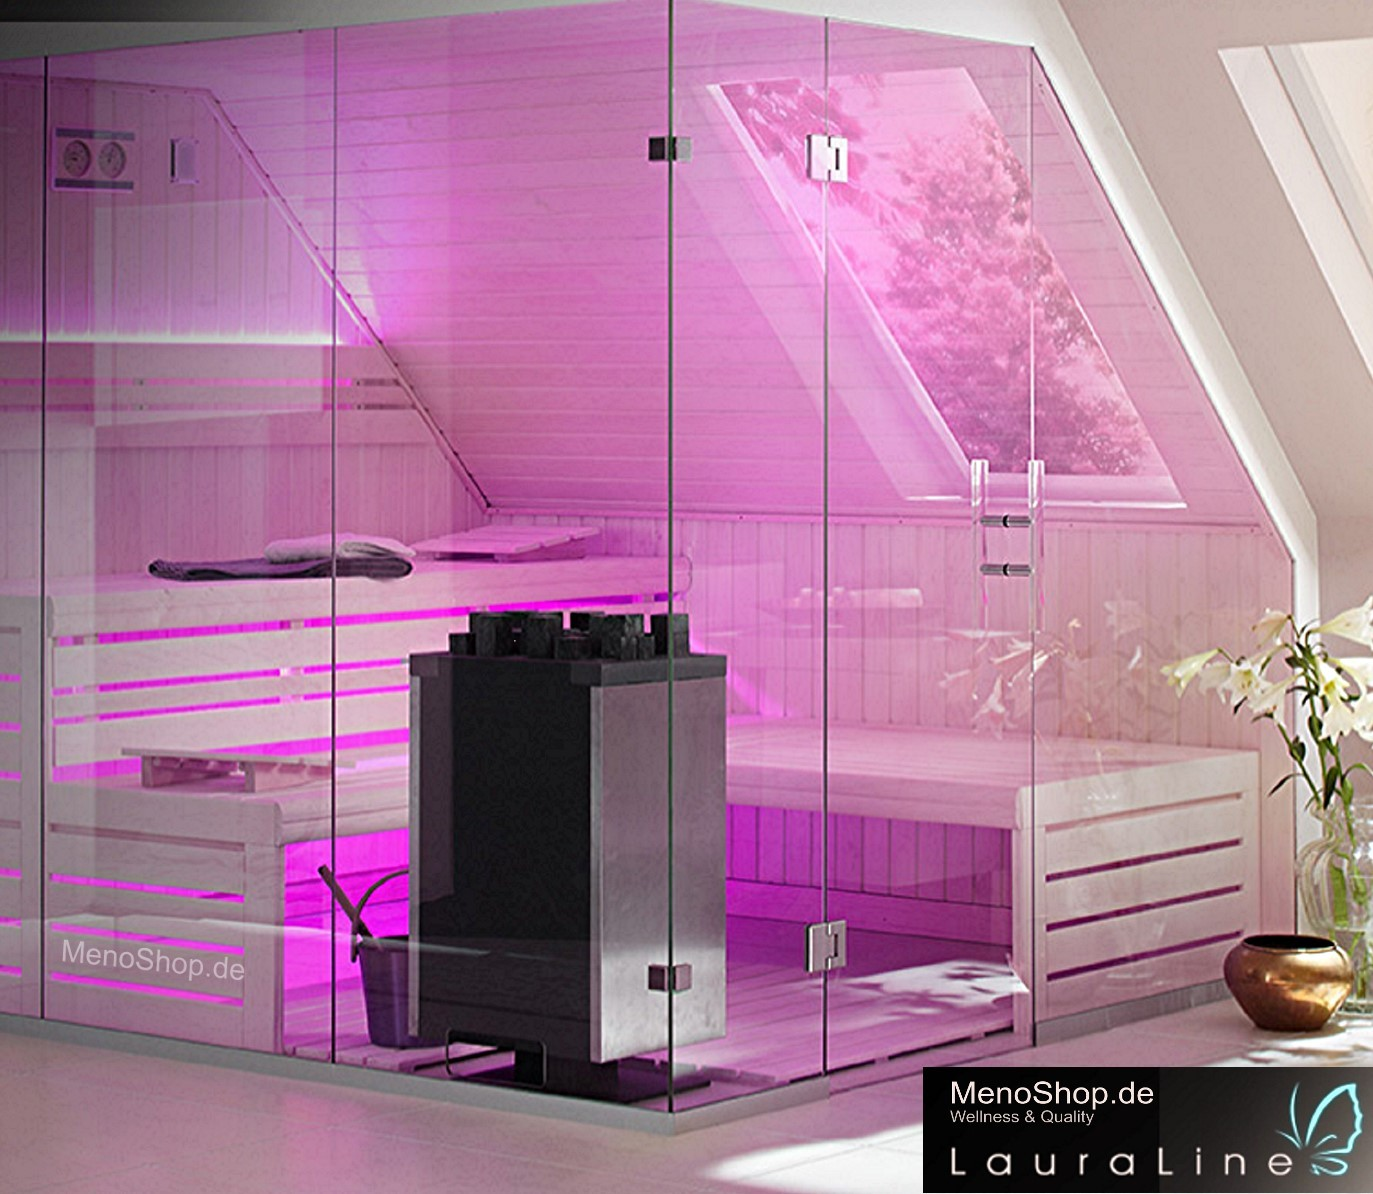 Design_Sauna_LauraLine3